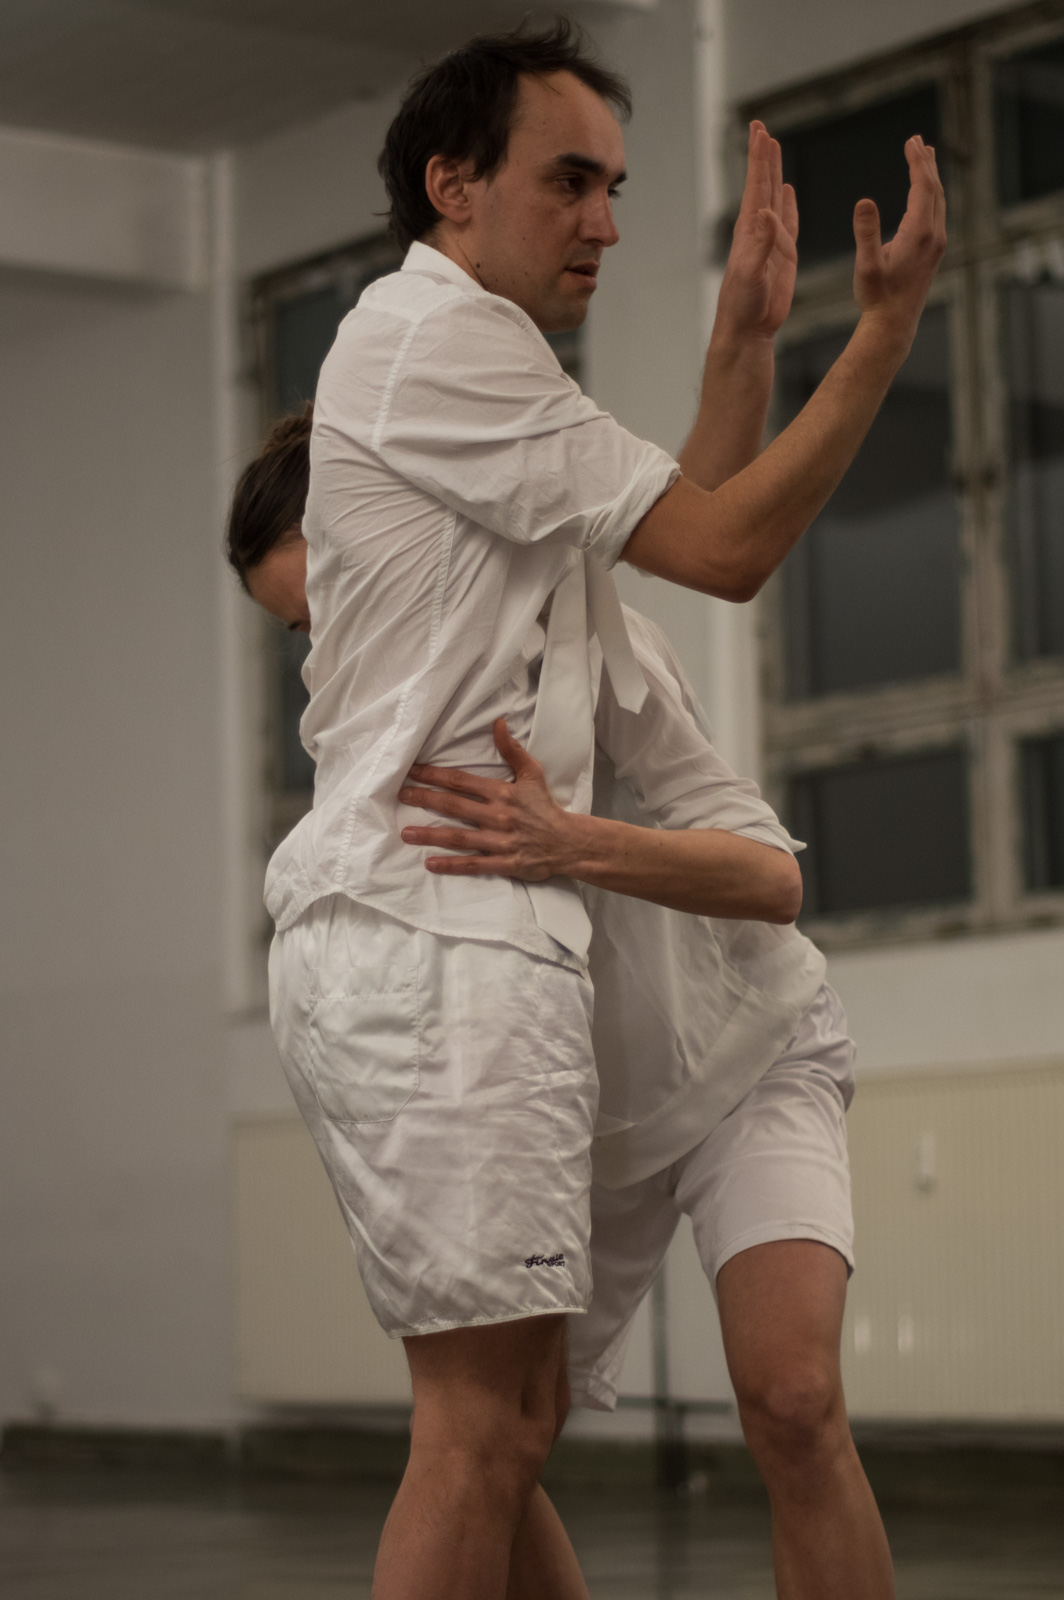 Performance by Anna Massoni and Vincent Weber.